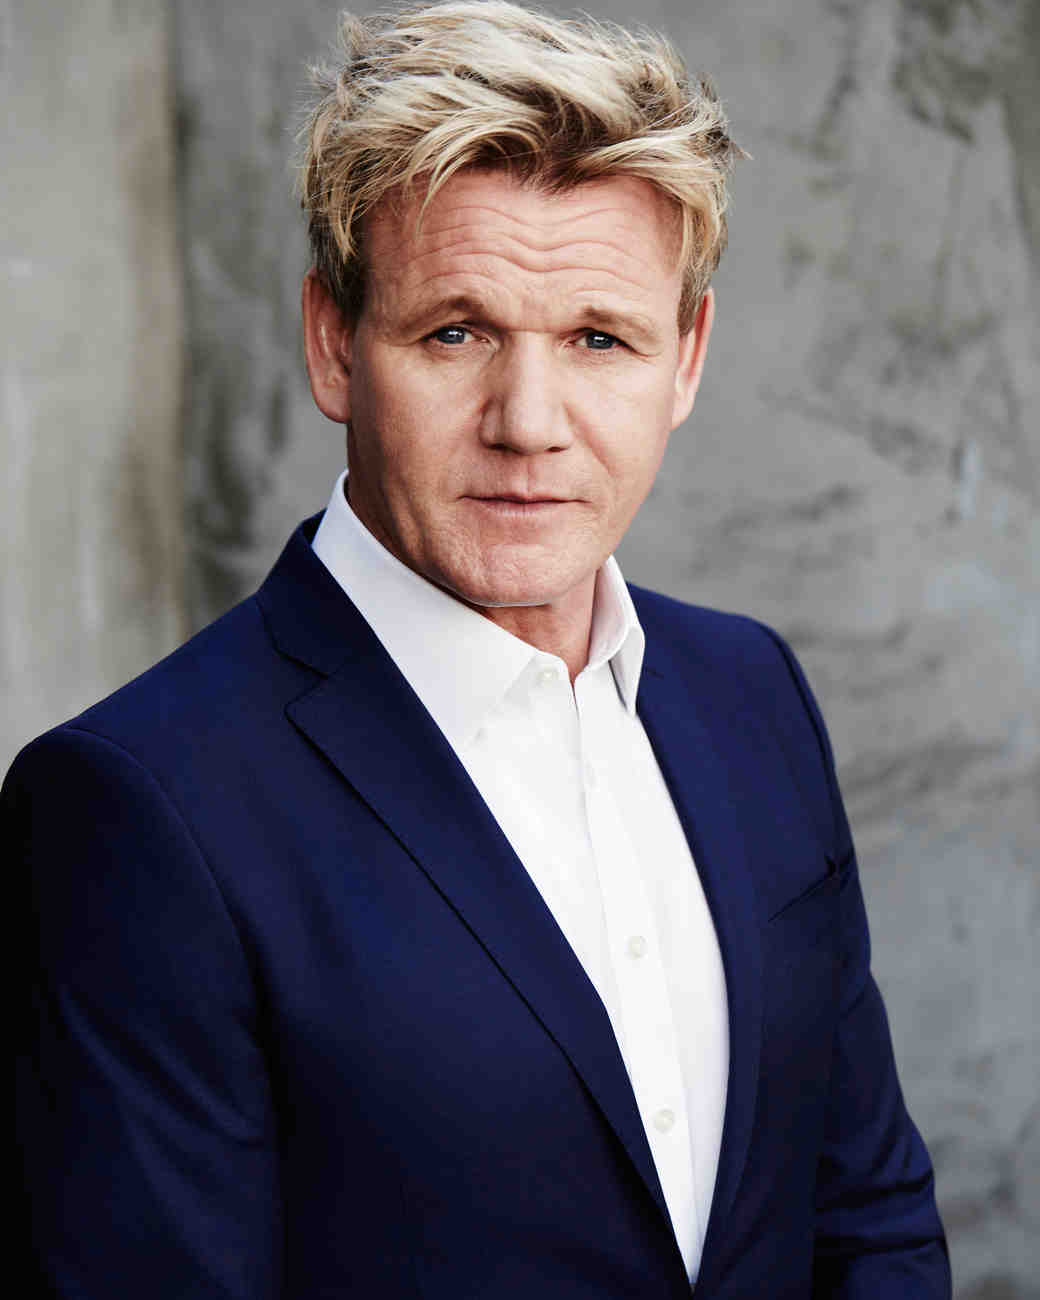 The One Thing Every Couple Should Have in Their Kitchen According to Gordon Ramsay